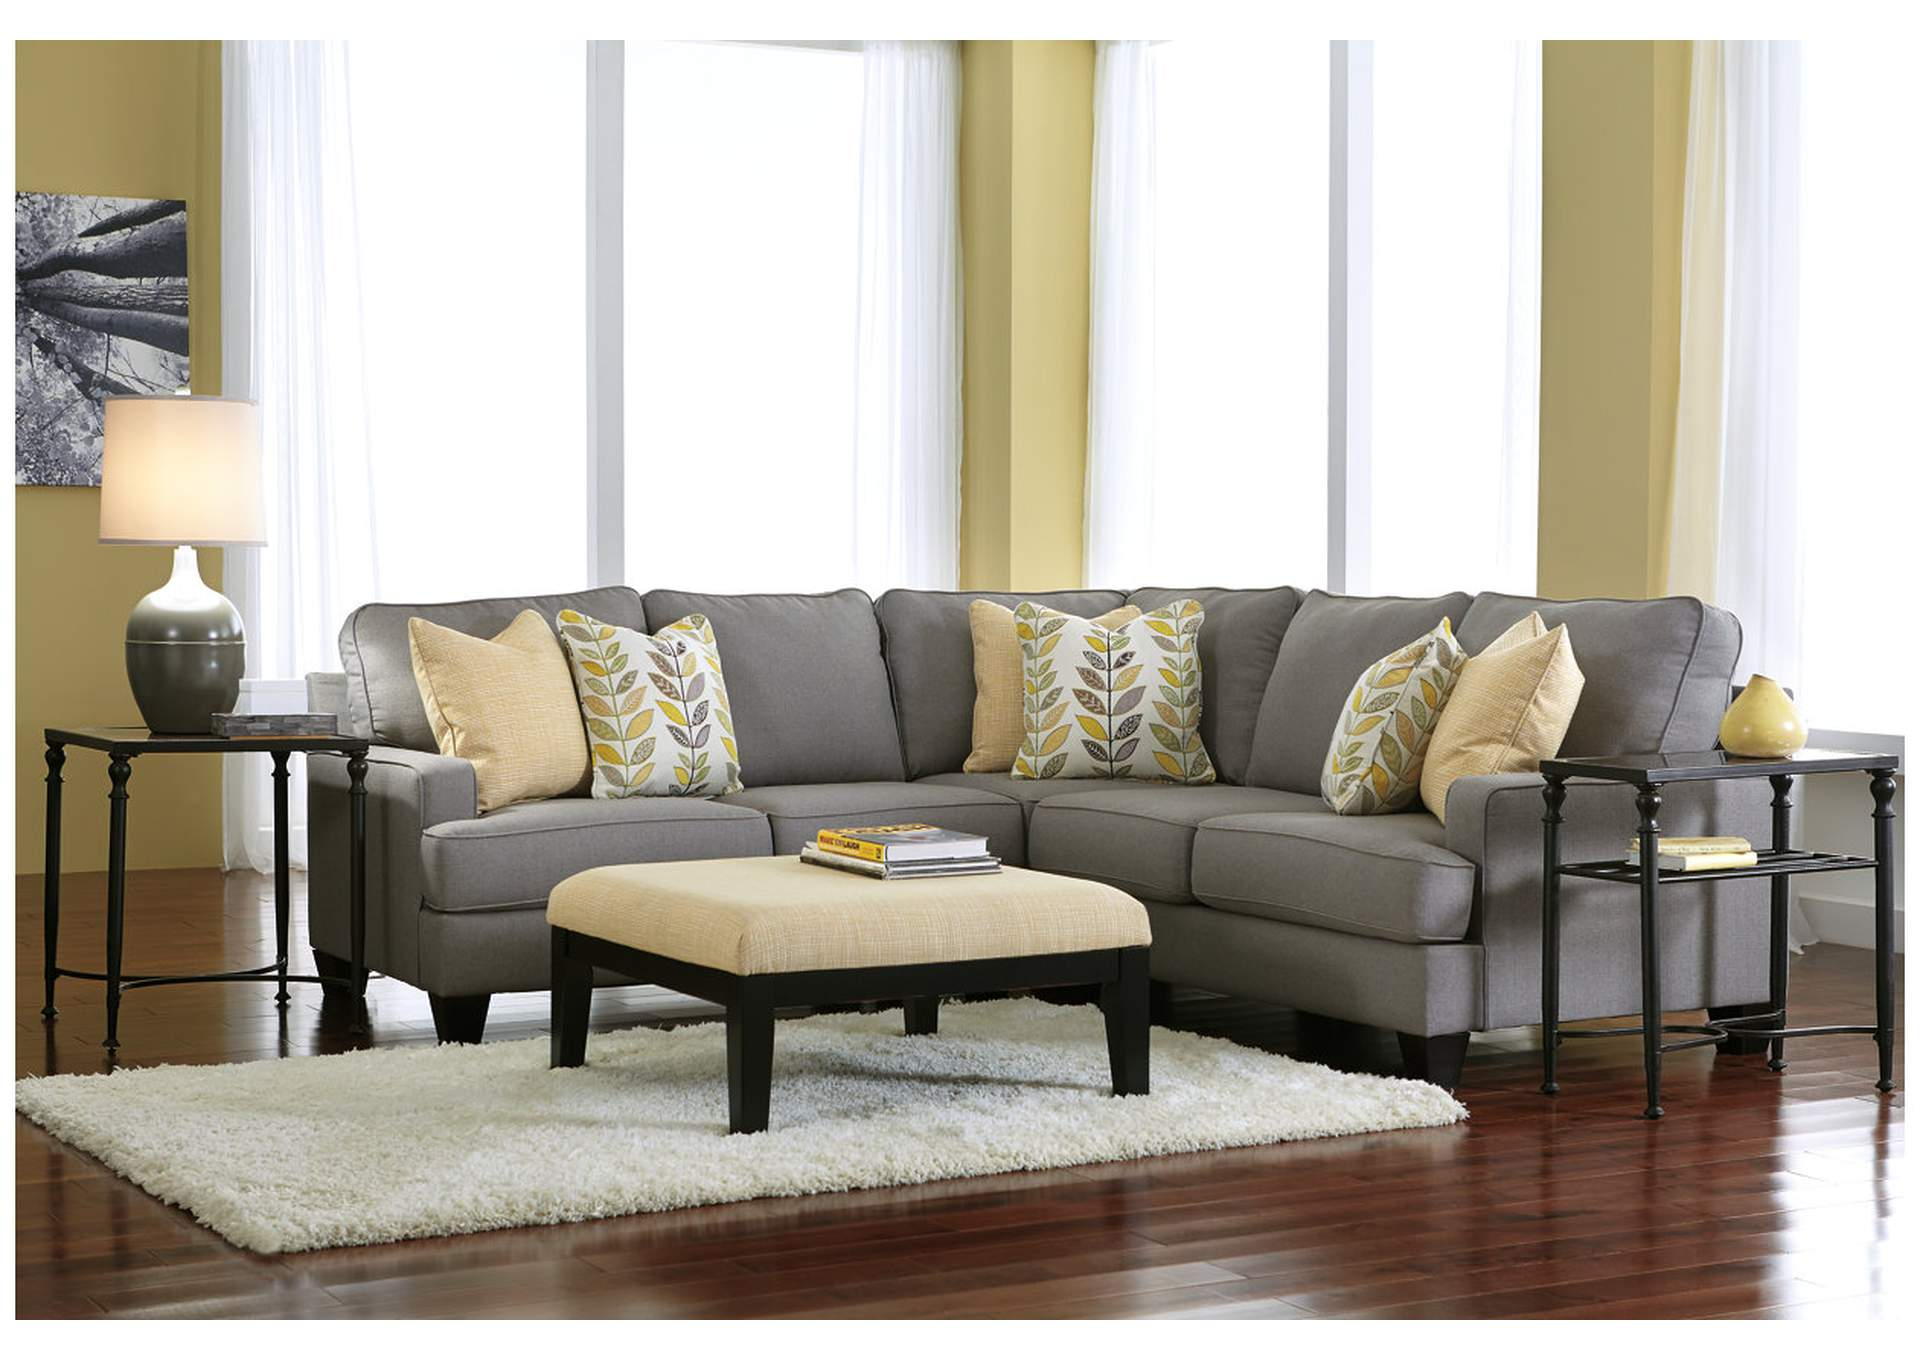 Davis home furniture asheville nc chamberly alloy sectional Davis home furniture asheville hours